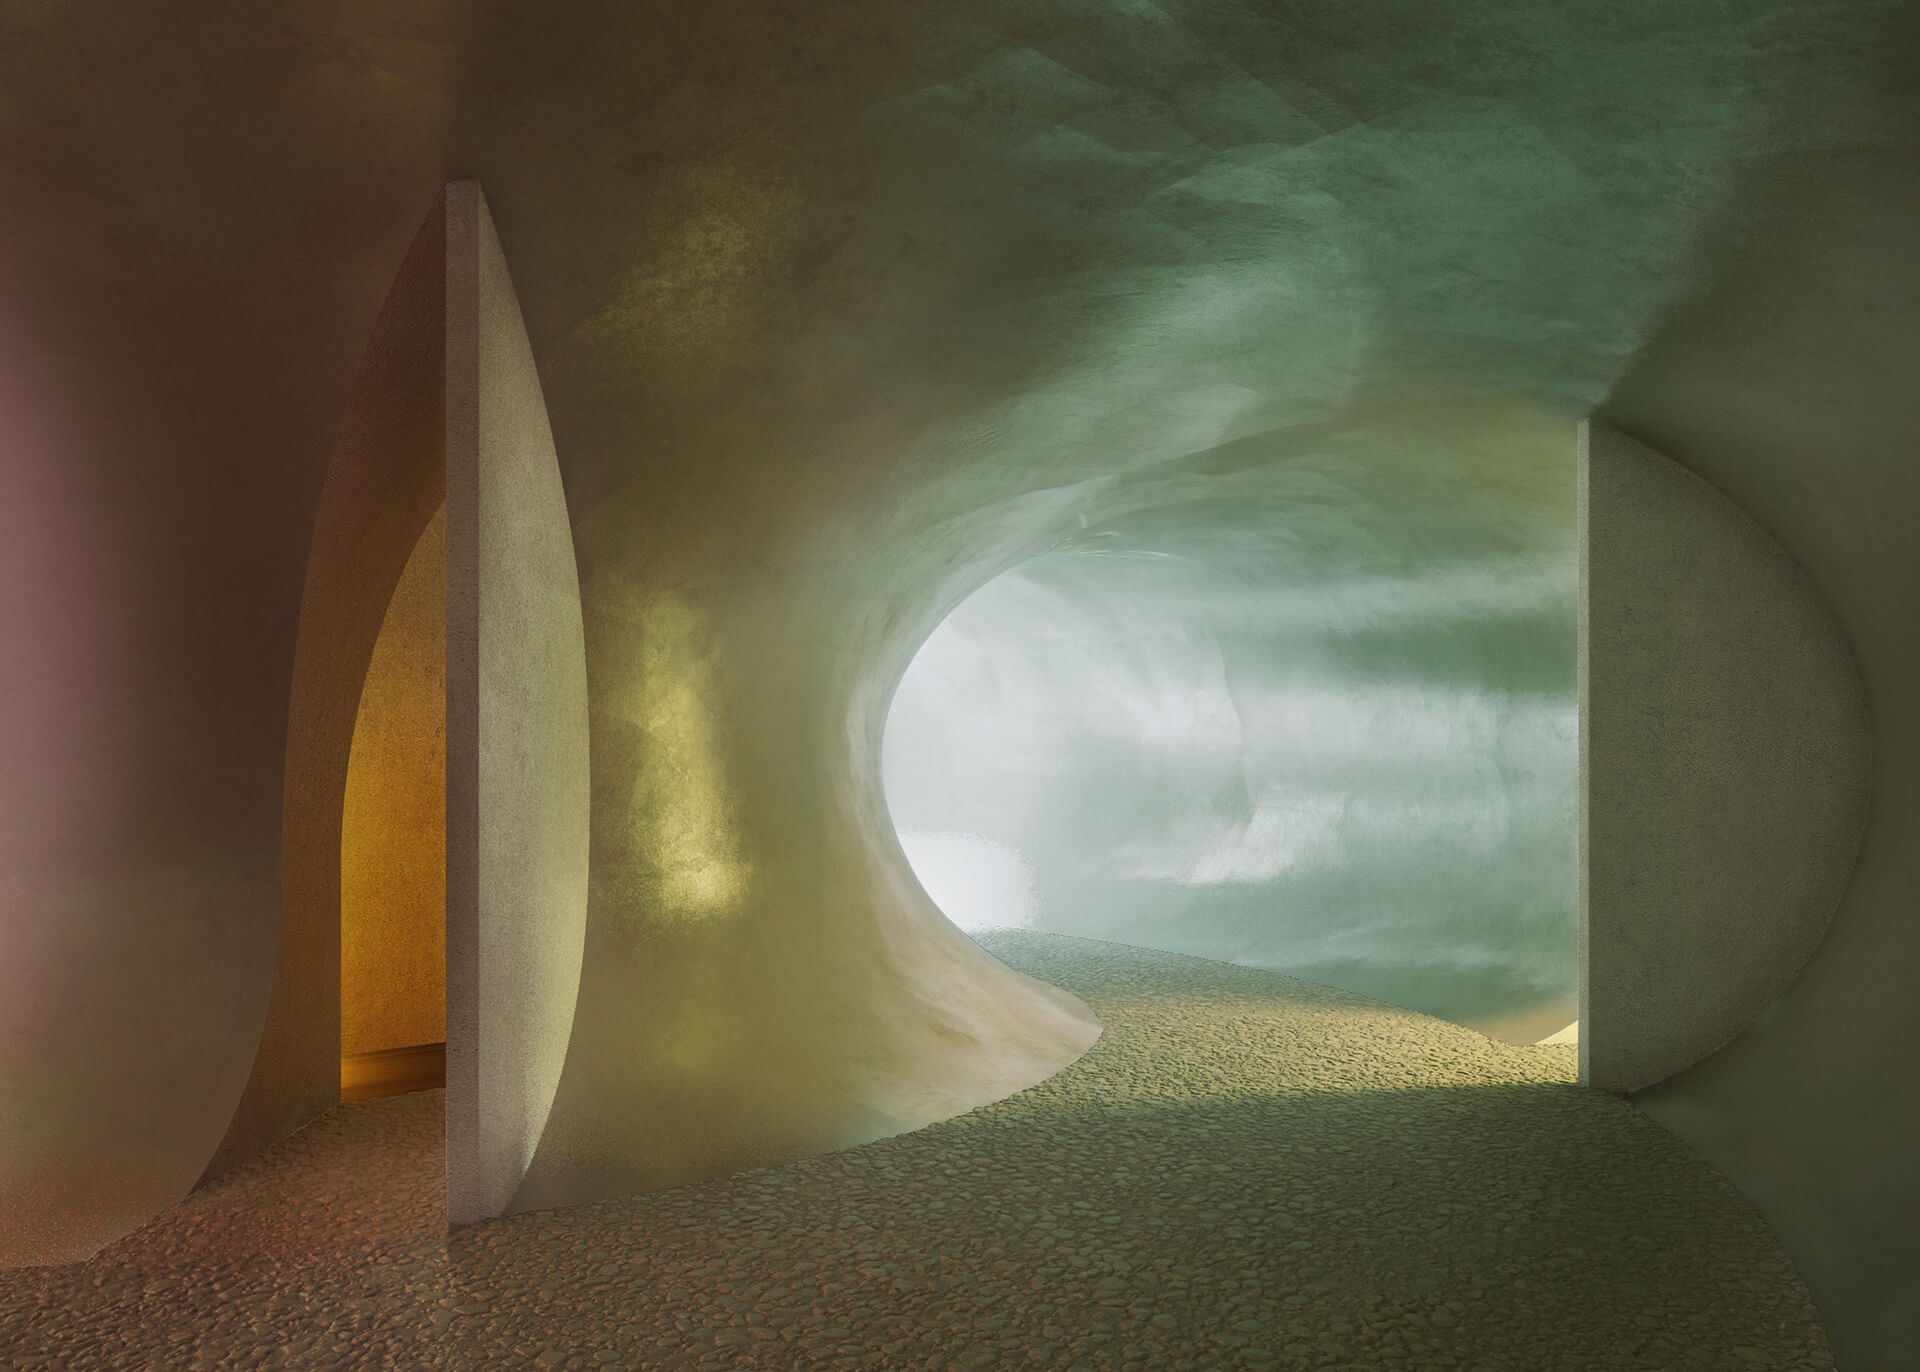 Fluid walls traverse the underground space | 515 Autobahnkirche | Herzog & de Meuron | STIRworld